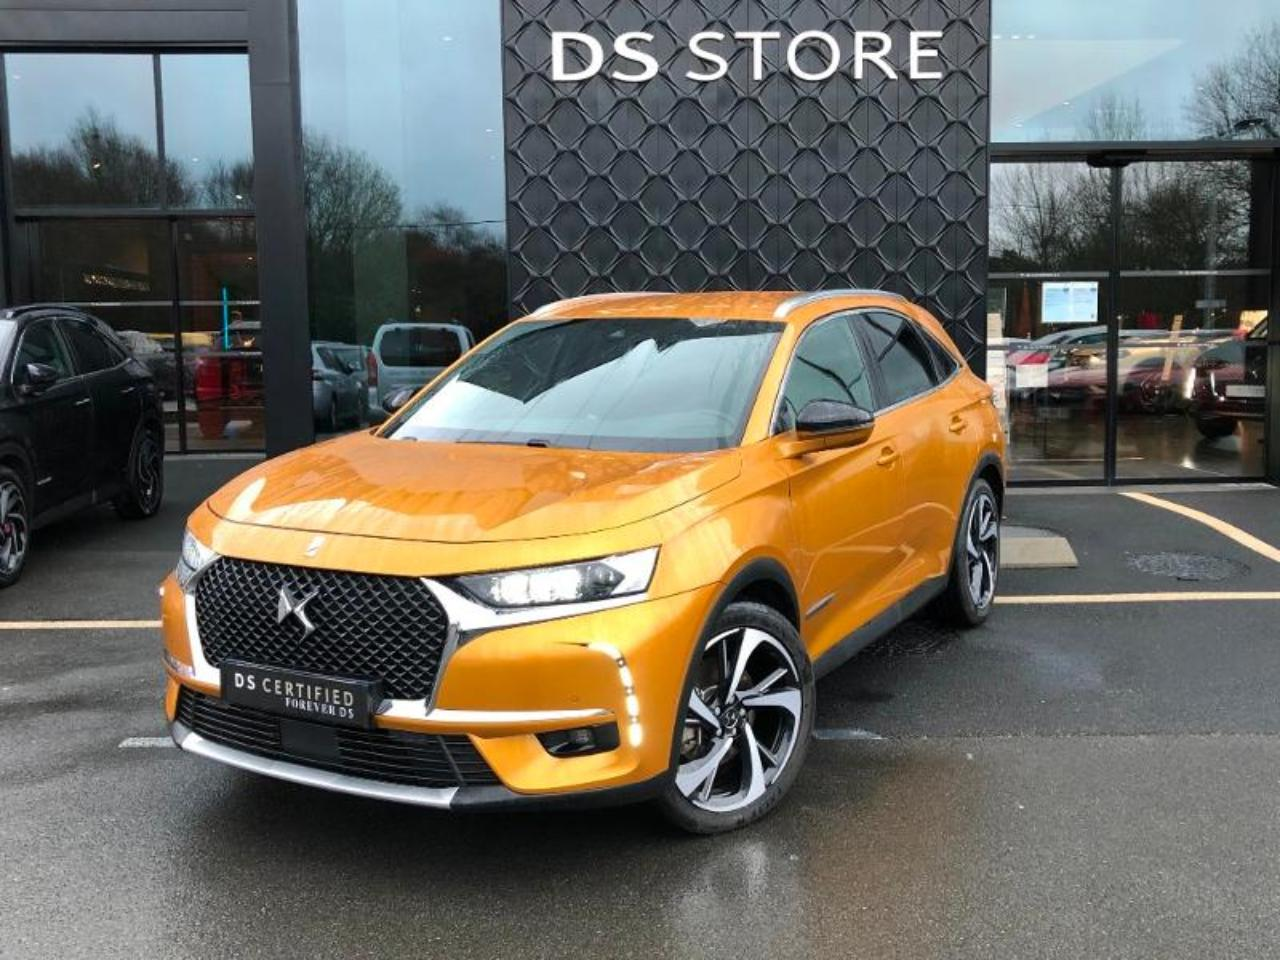 Ds DS 7 Crossback Crossback E-TENSE 4x4 300ch Executive + Options